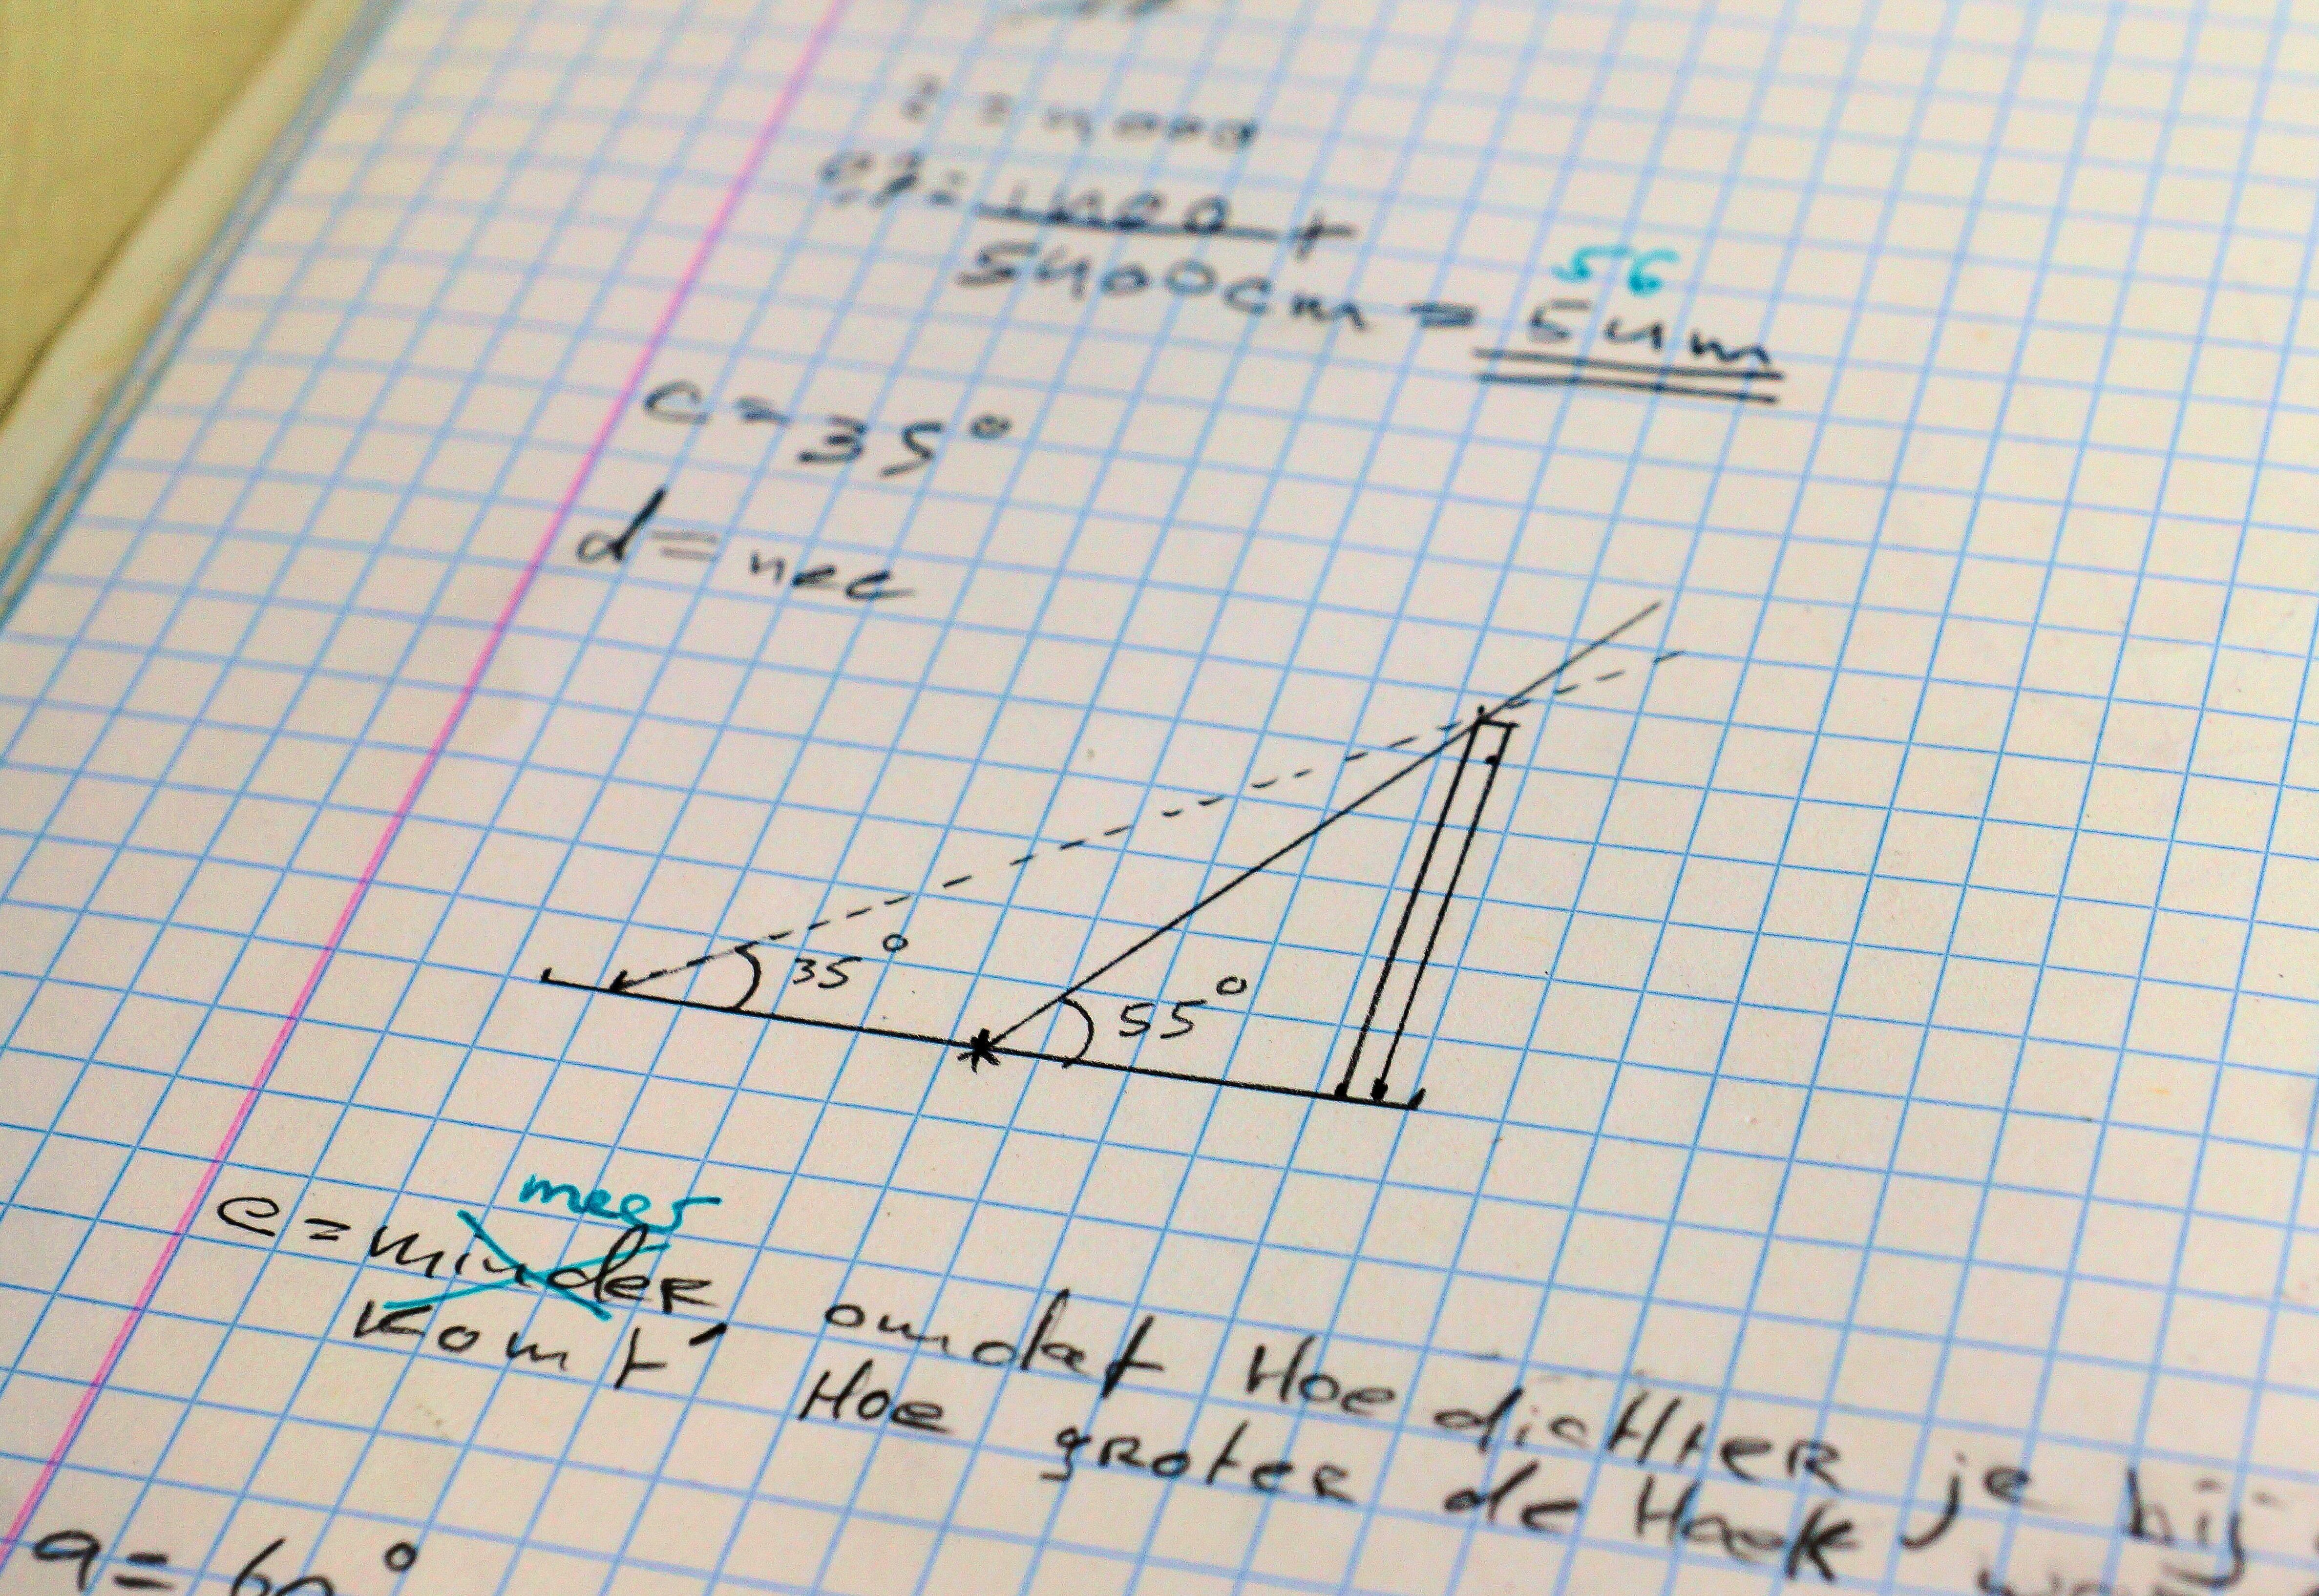 How to Determine the Equation of a Line